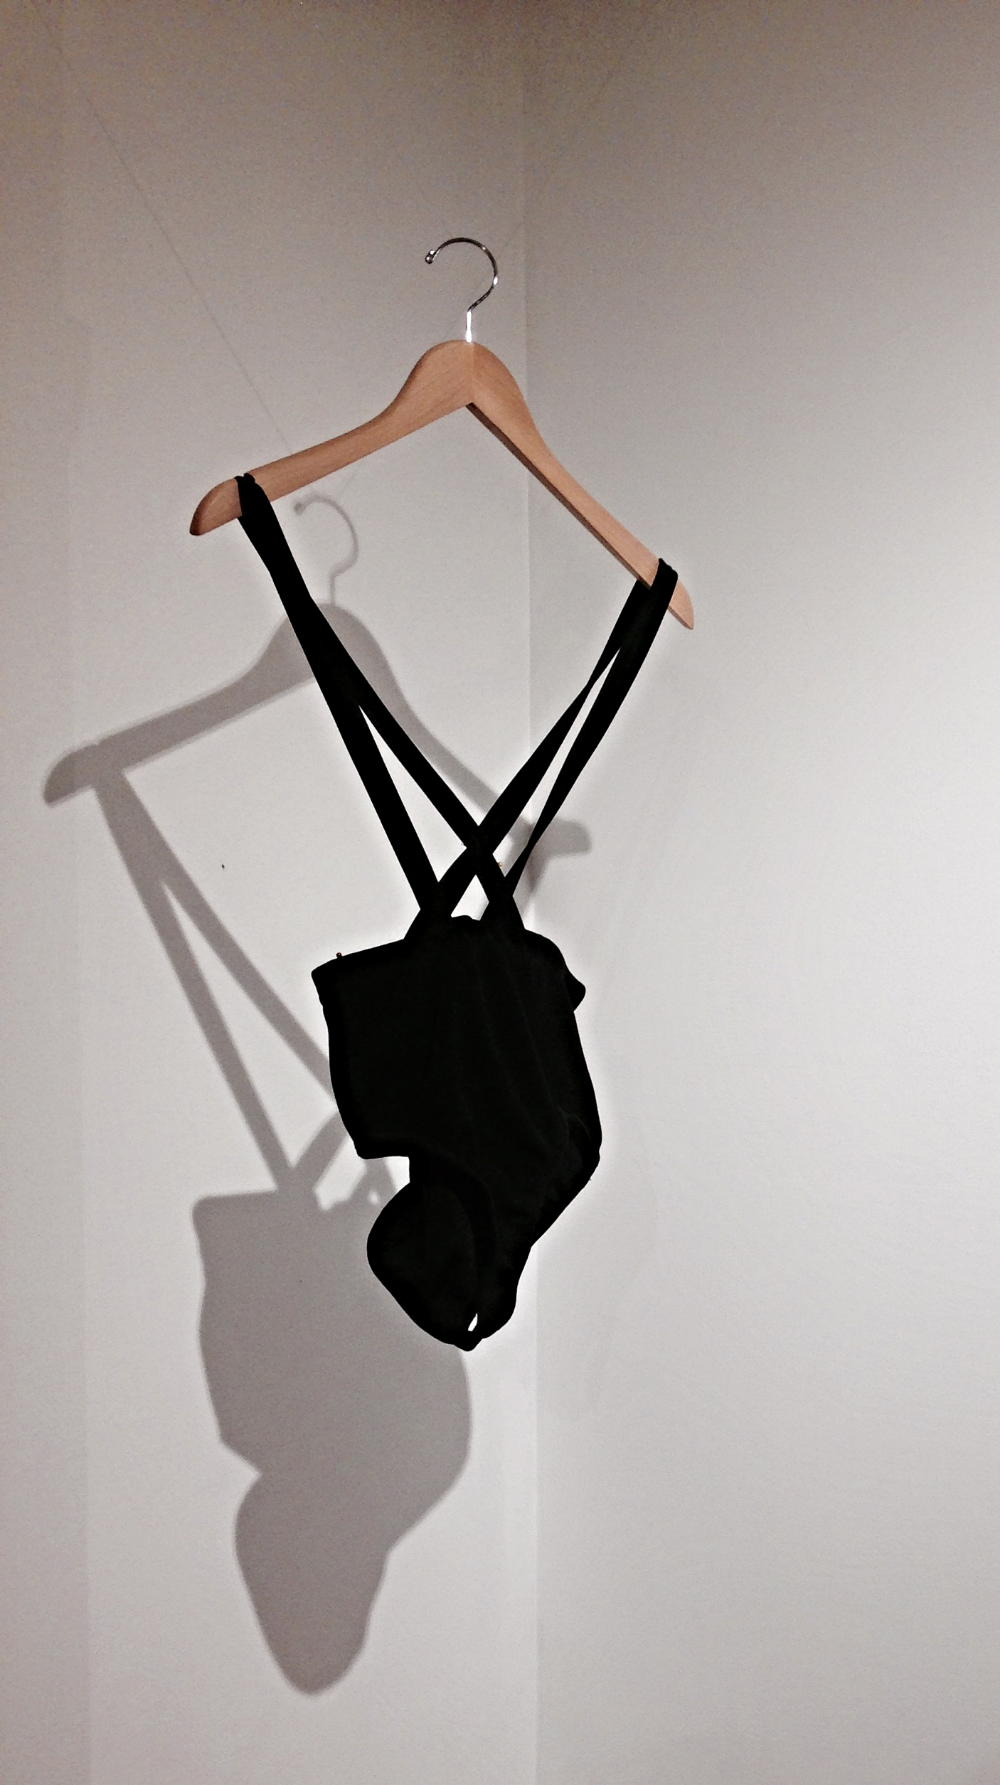 Monokini on display. Construction by Olivia Sparks.